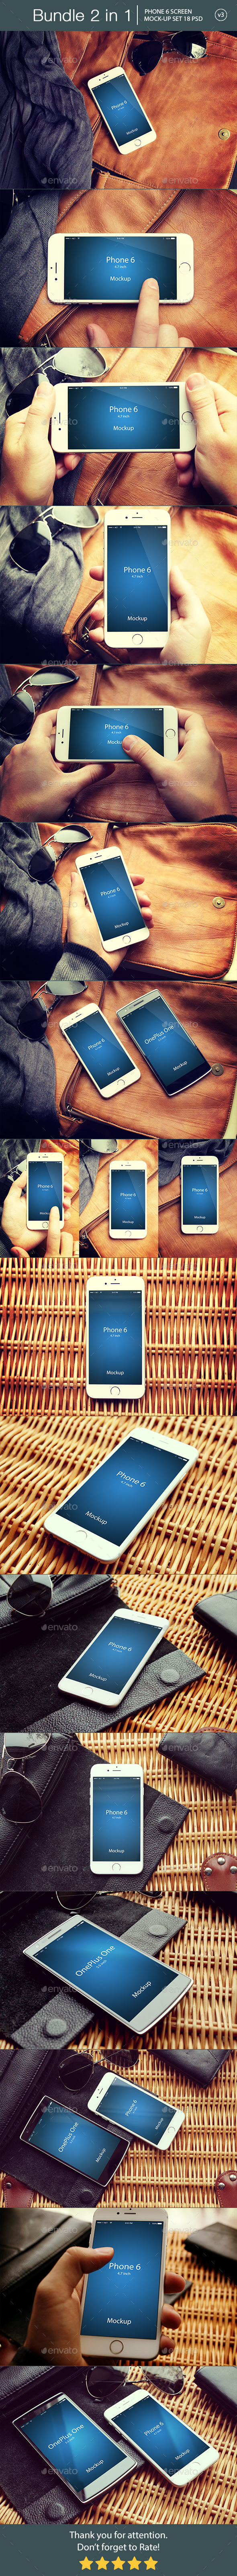 iPhone 6 Mockup Bundle 2 in 1 v3 - Mobile Displays